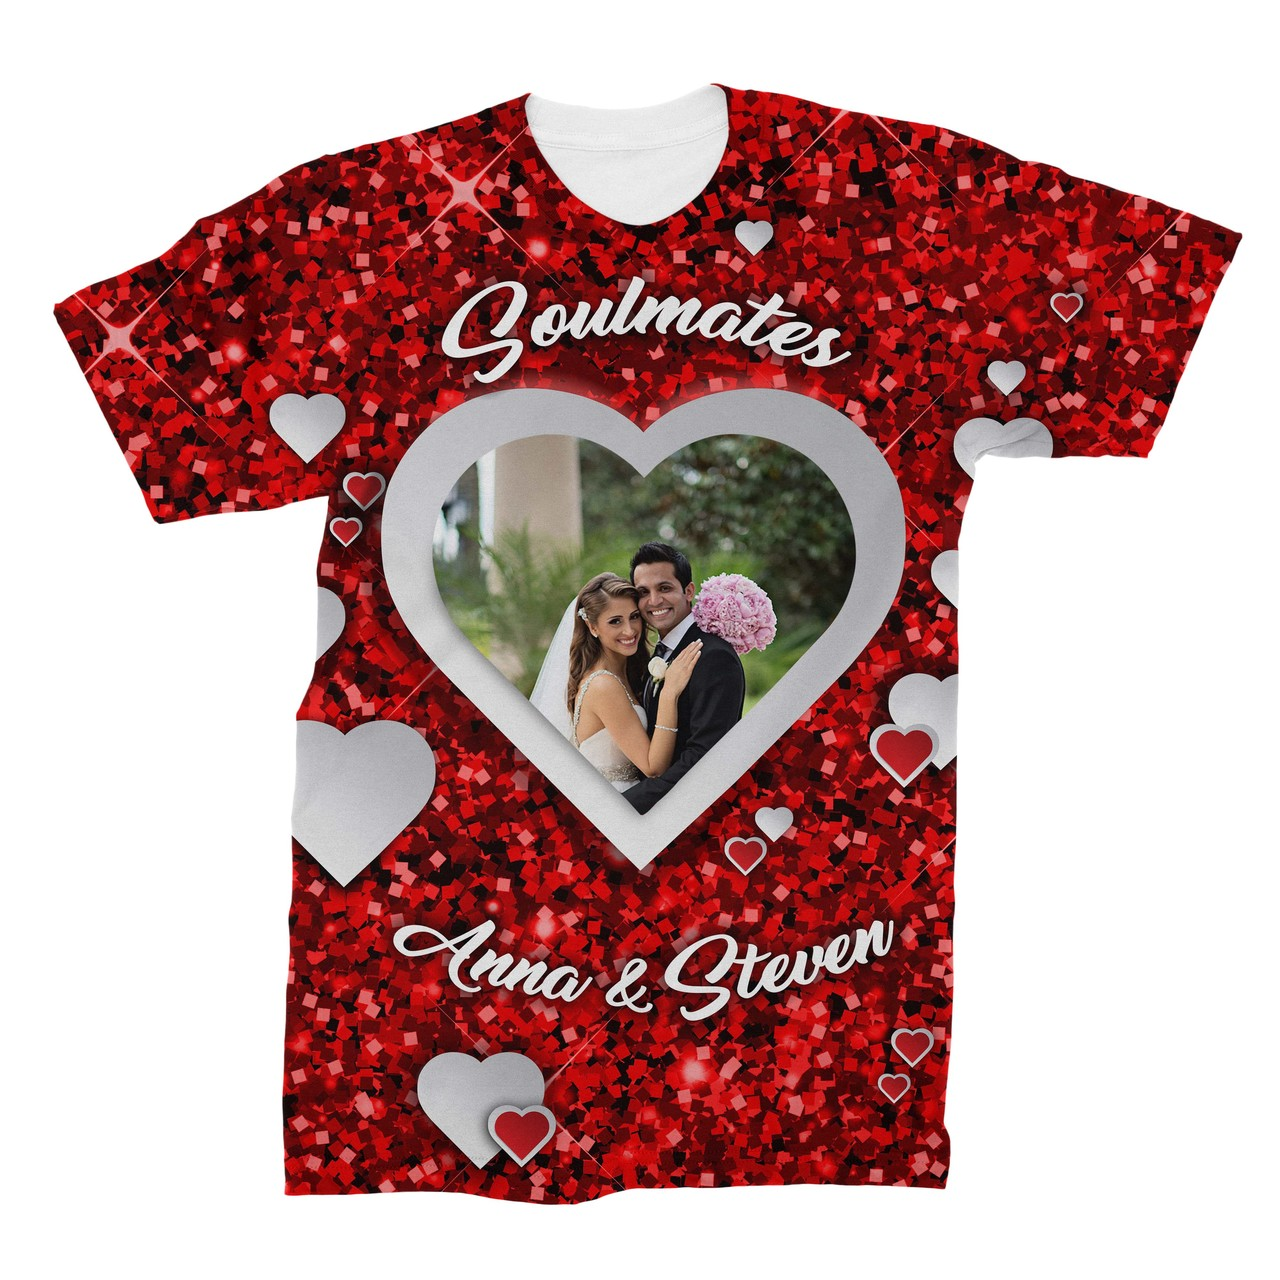 c1958a204 Custom Valentine's Day All Over Print Photo T-Shirt - Subliworks